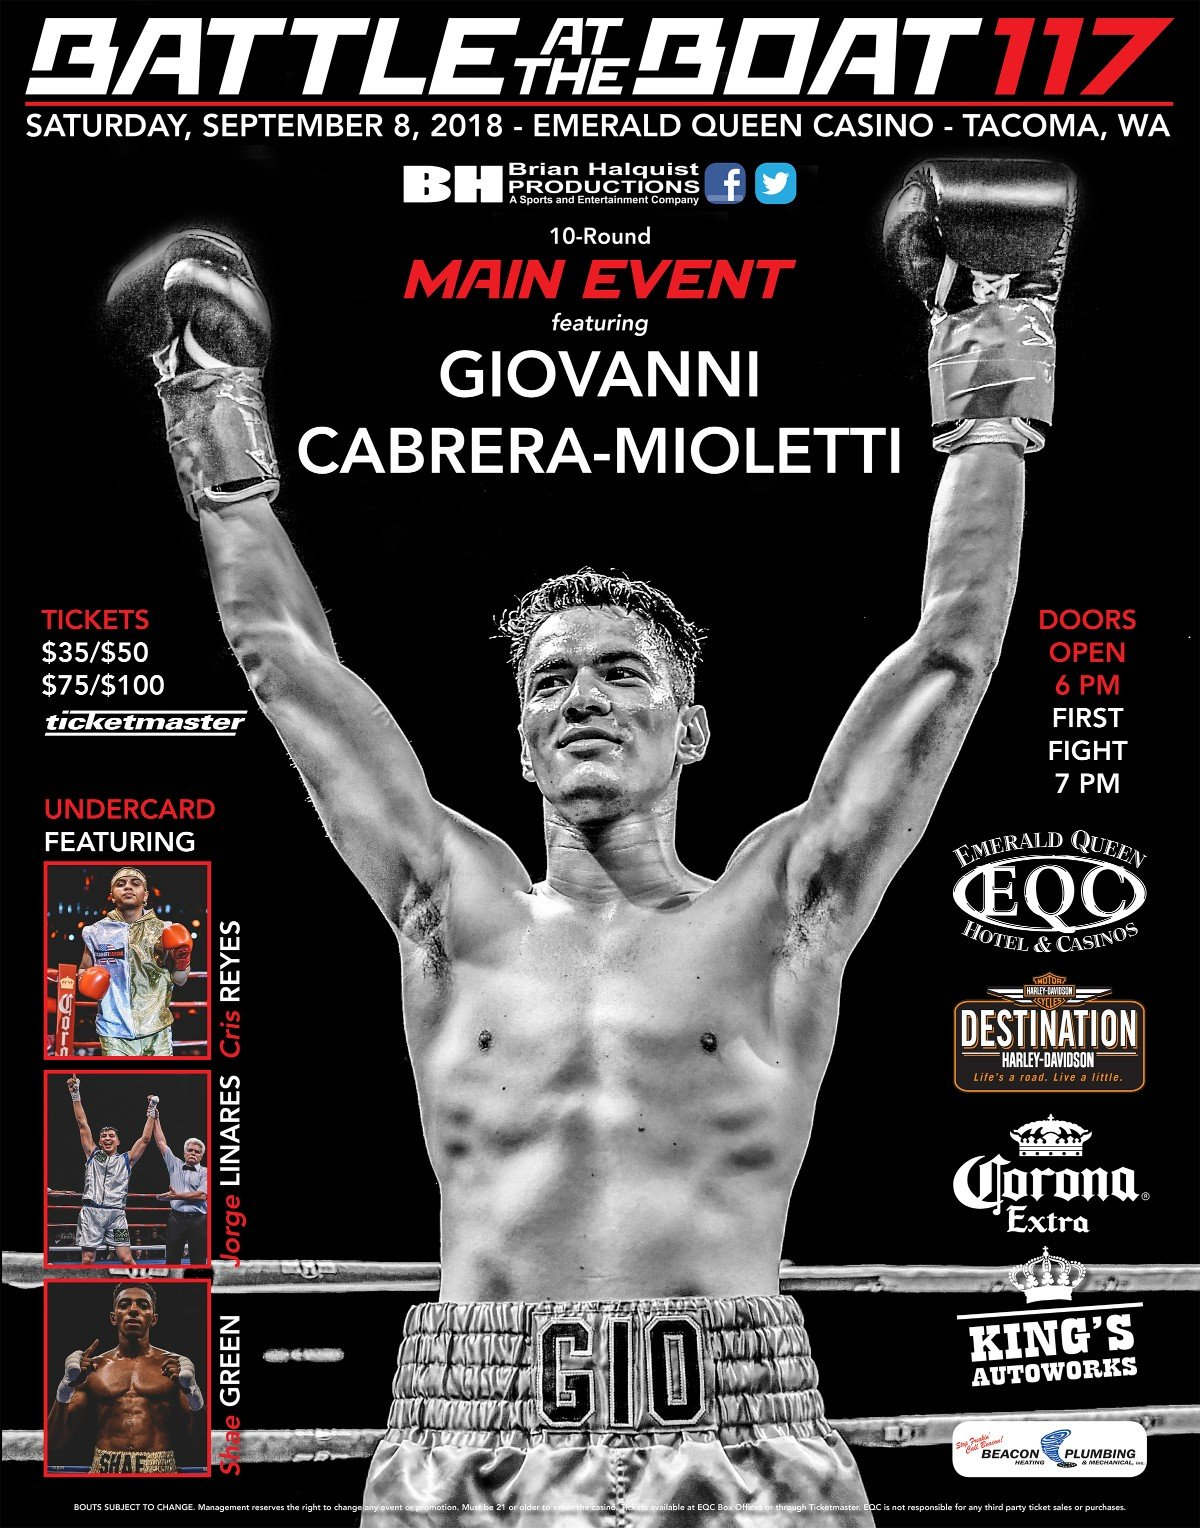 Giovanni Cabrera Mioletti - Rising star Giovanni Cabrera Mioletti will put his undefeated record on the line when he faces former world championship contender Carlos Padilla in the main event of Battle at the Boat 117 on Saturday at the Emerald Queen Casino in Tacoma, Wash.